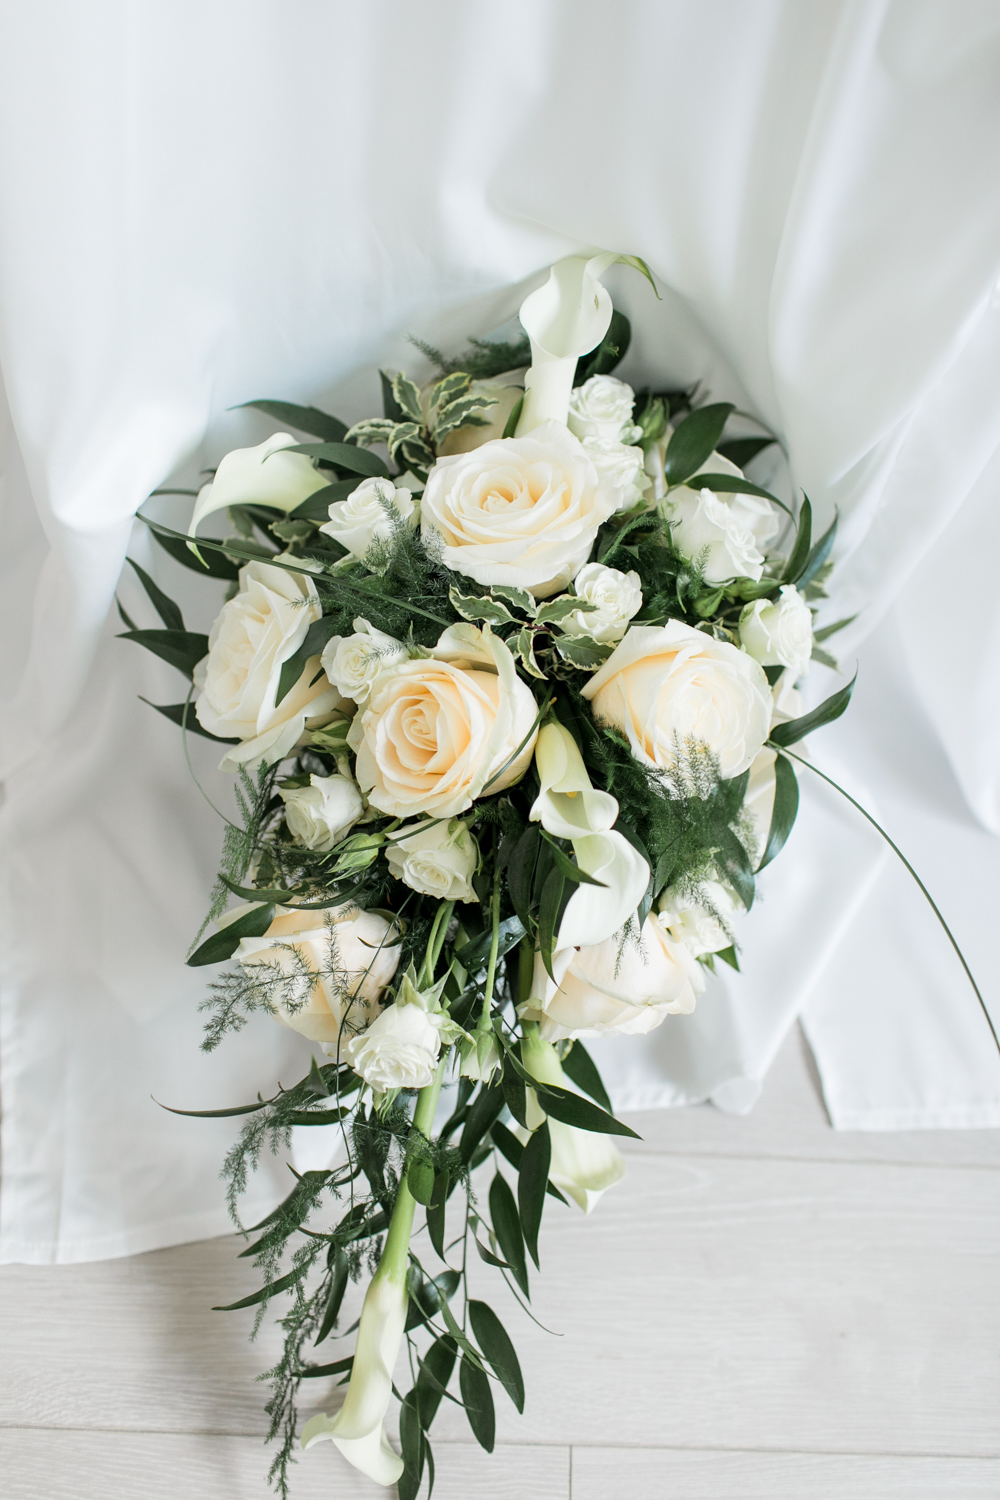 white roses with green foliage for wedding bouquet